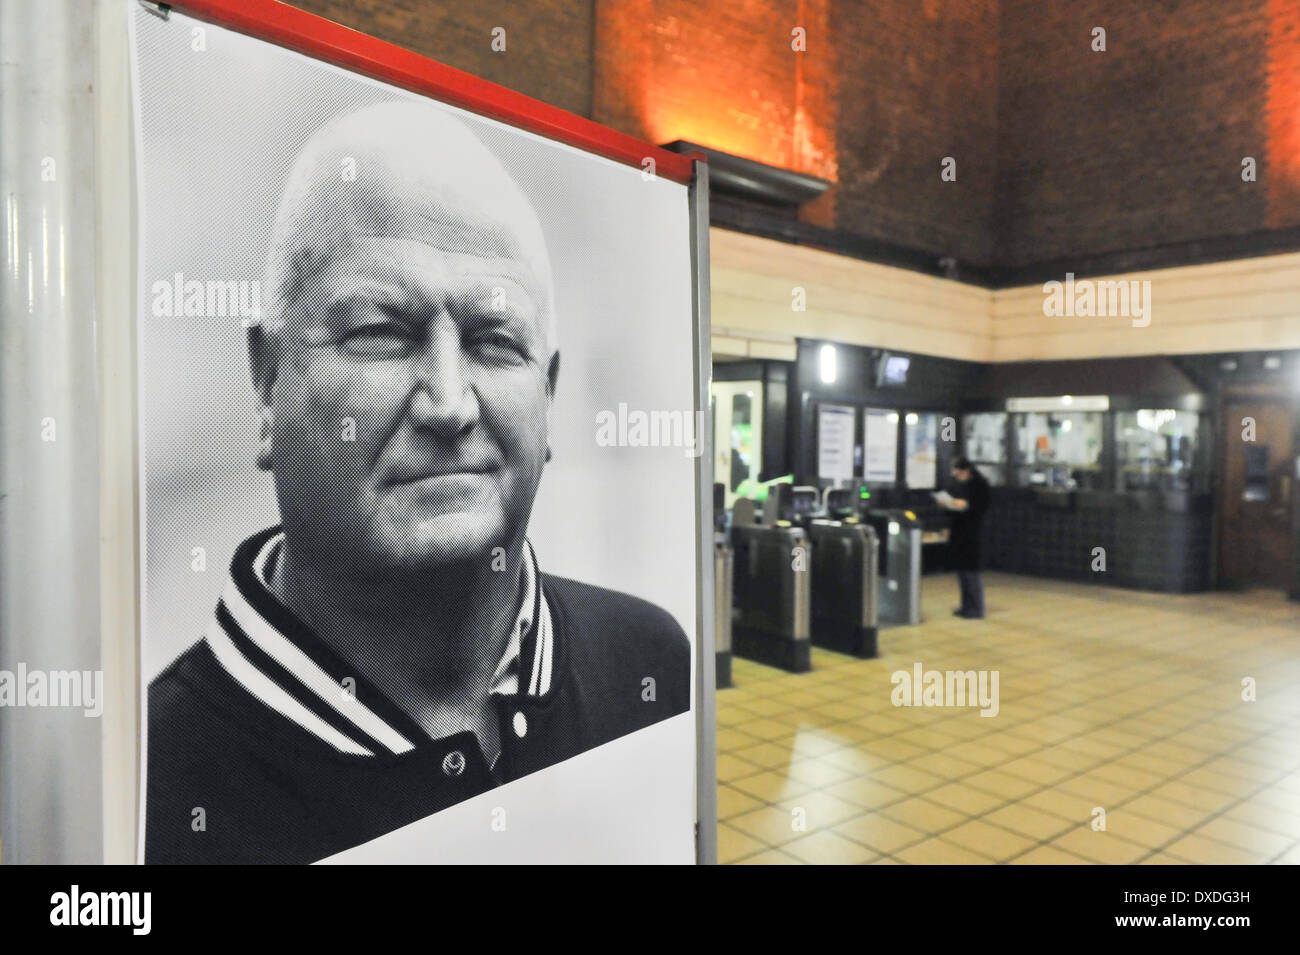 Turnpike Lane Station, London, UK. 24th March 2014. In Turnpike Lane Station stands a poster of the late Bob Crow, the General Secretary of the RMT Union, posted on the day of his funeral. Credit:  Matthew Chattle/Alamy Live News - Stock Image